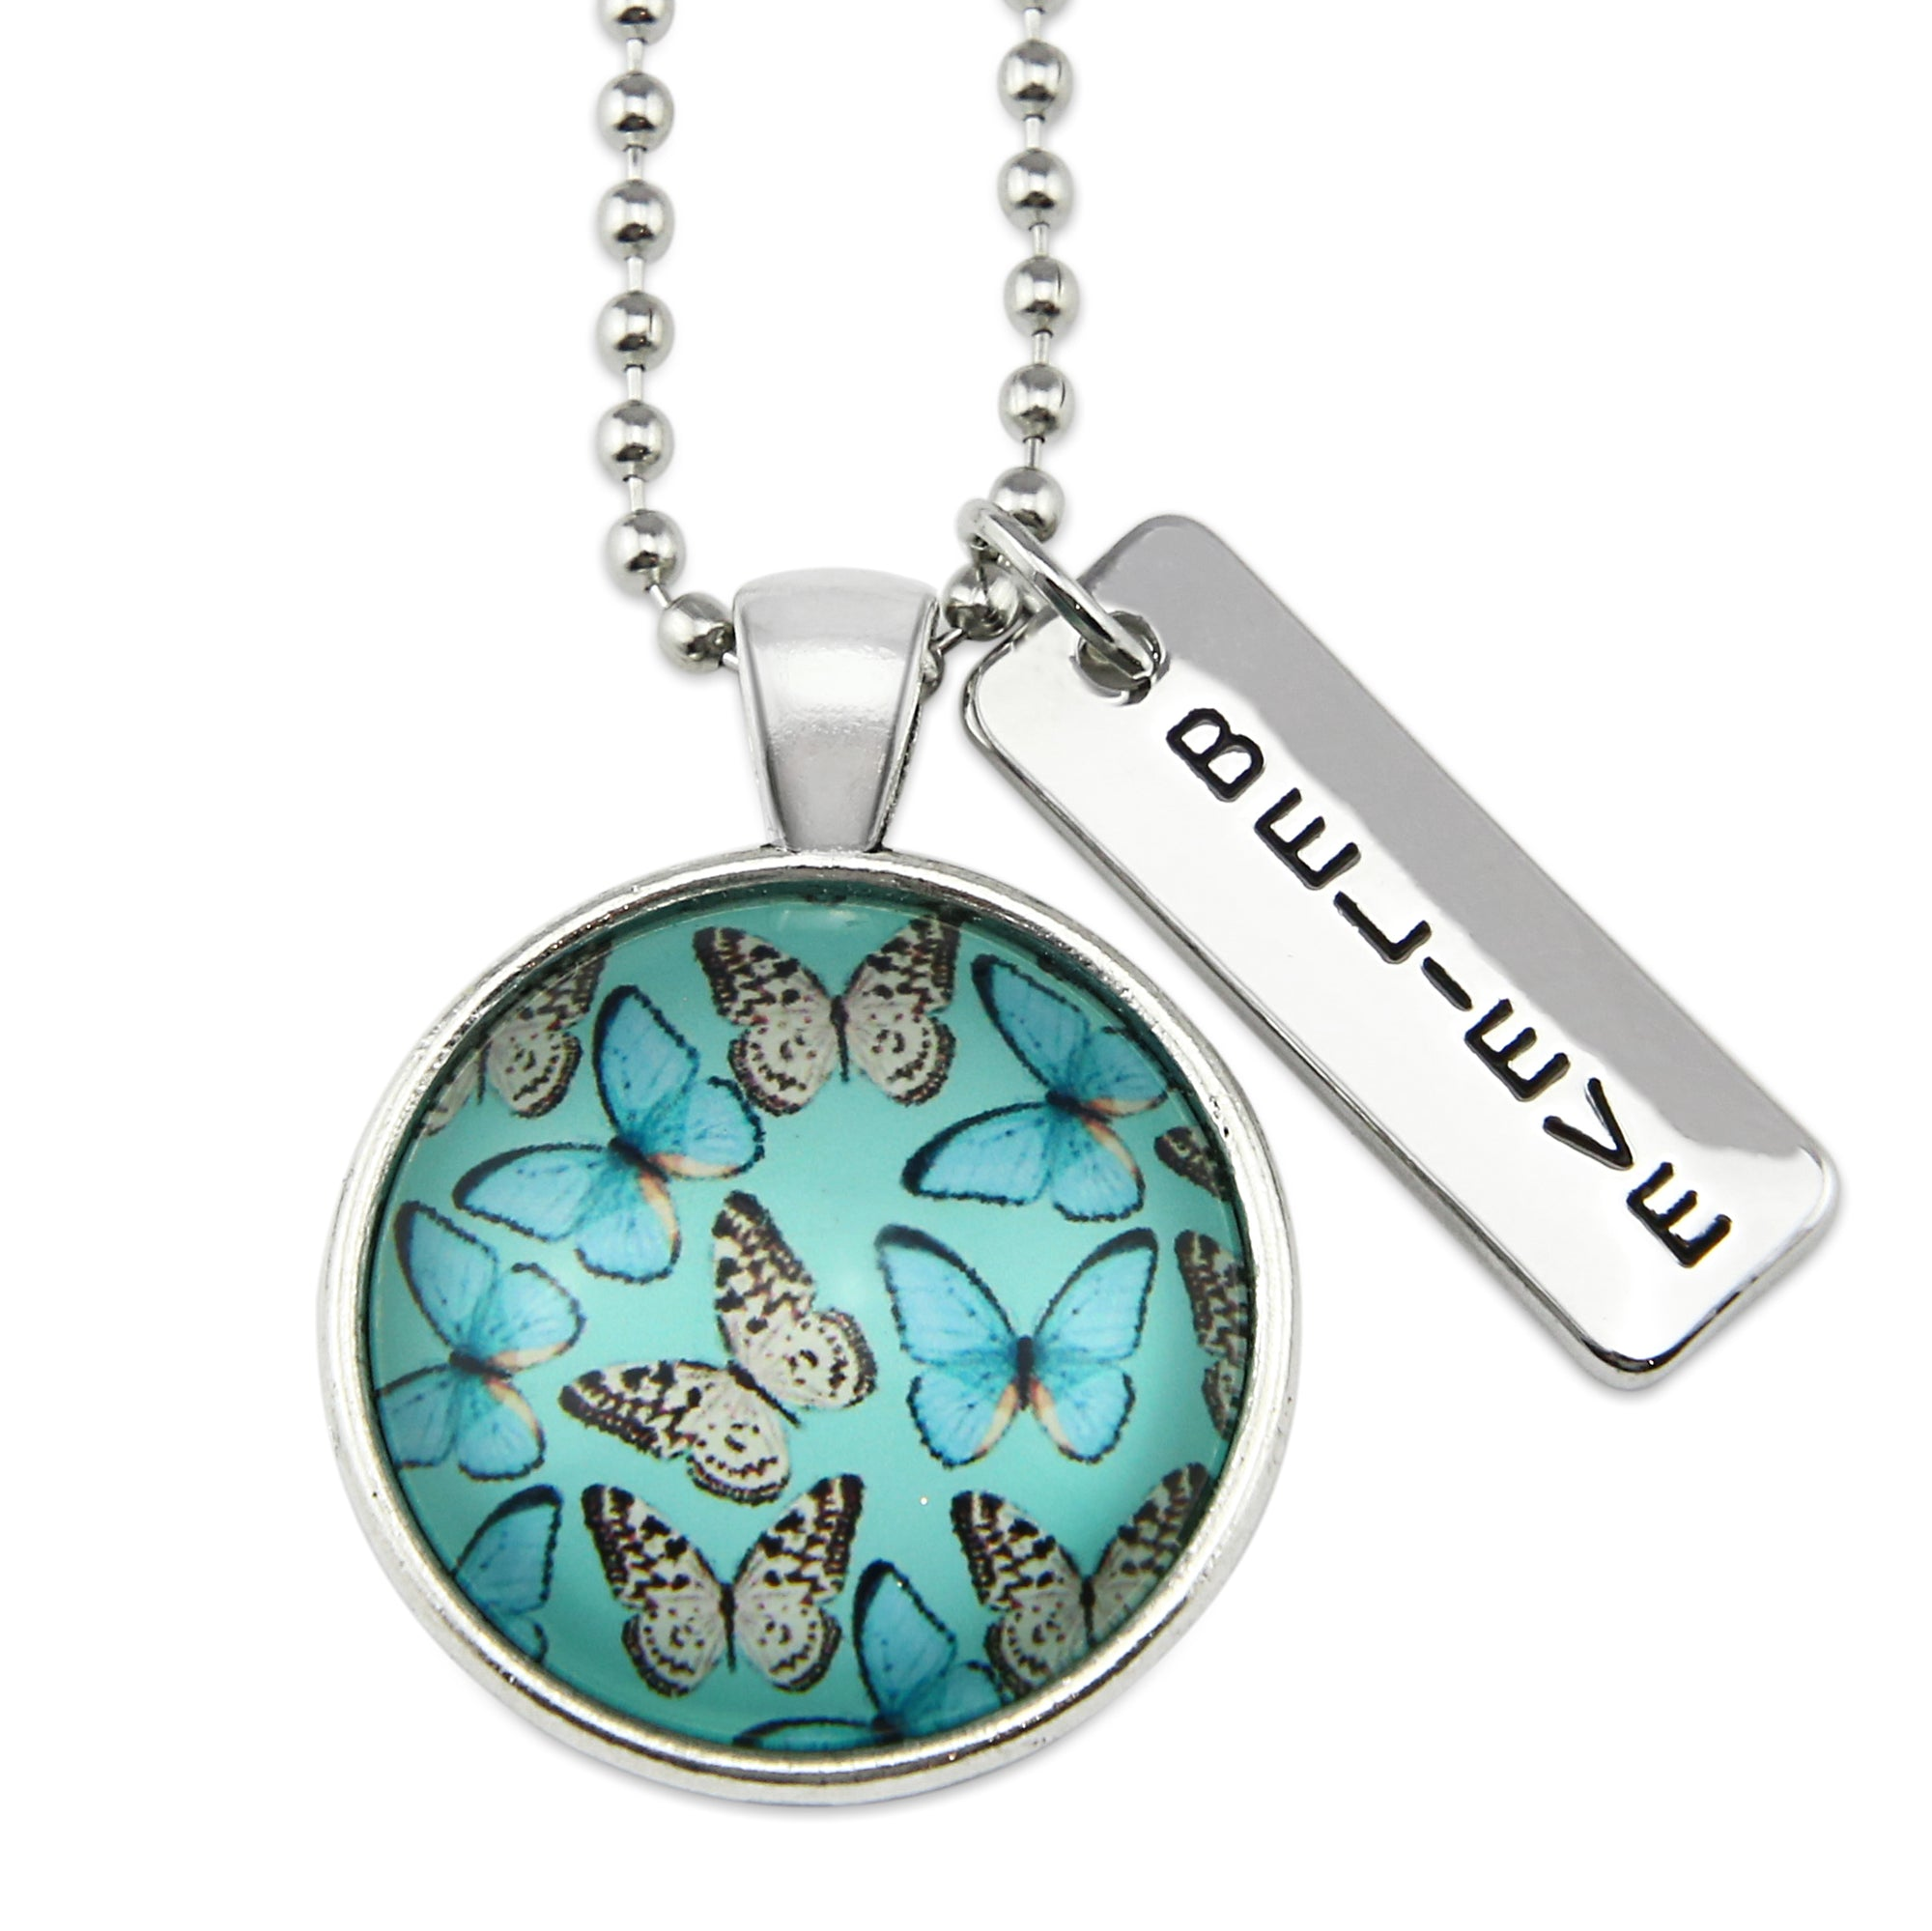 Heart & Soul Wings - Vintage Silver ' BELIEVE ' Necklace - Butterfly Flutter (11024)